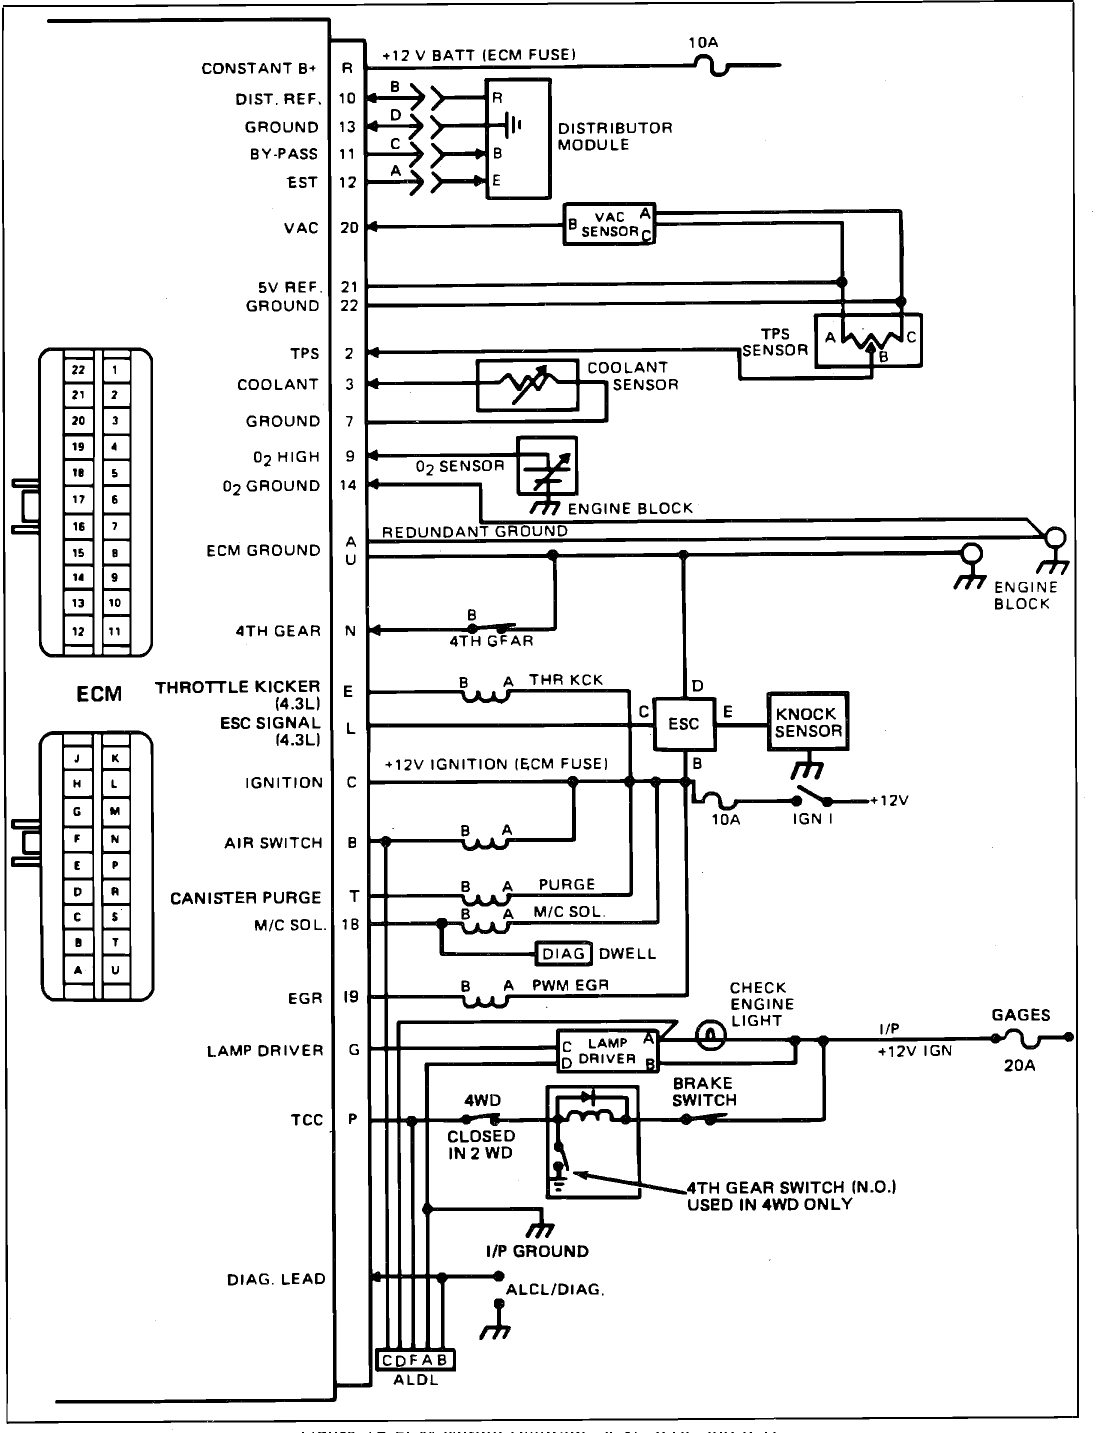 hight resolution of 95 chevy suburban wiring diagram simple wiring diagram schema rh 35 lodge finder de silverado wiring diagram radio wiring diagram 1995 chevy 1500